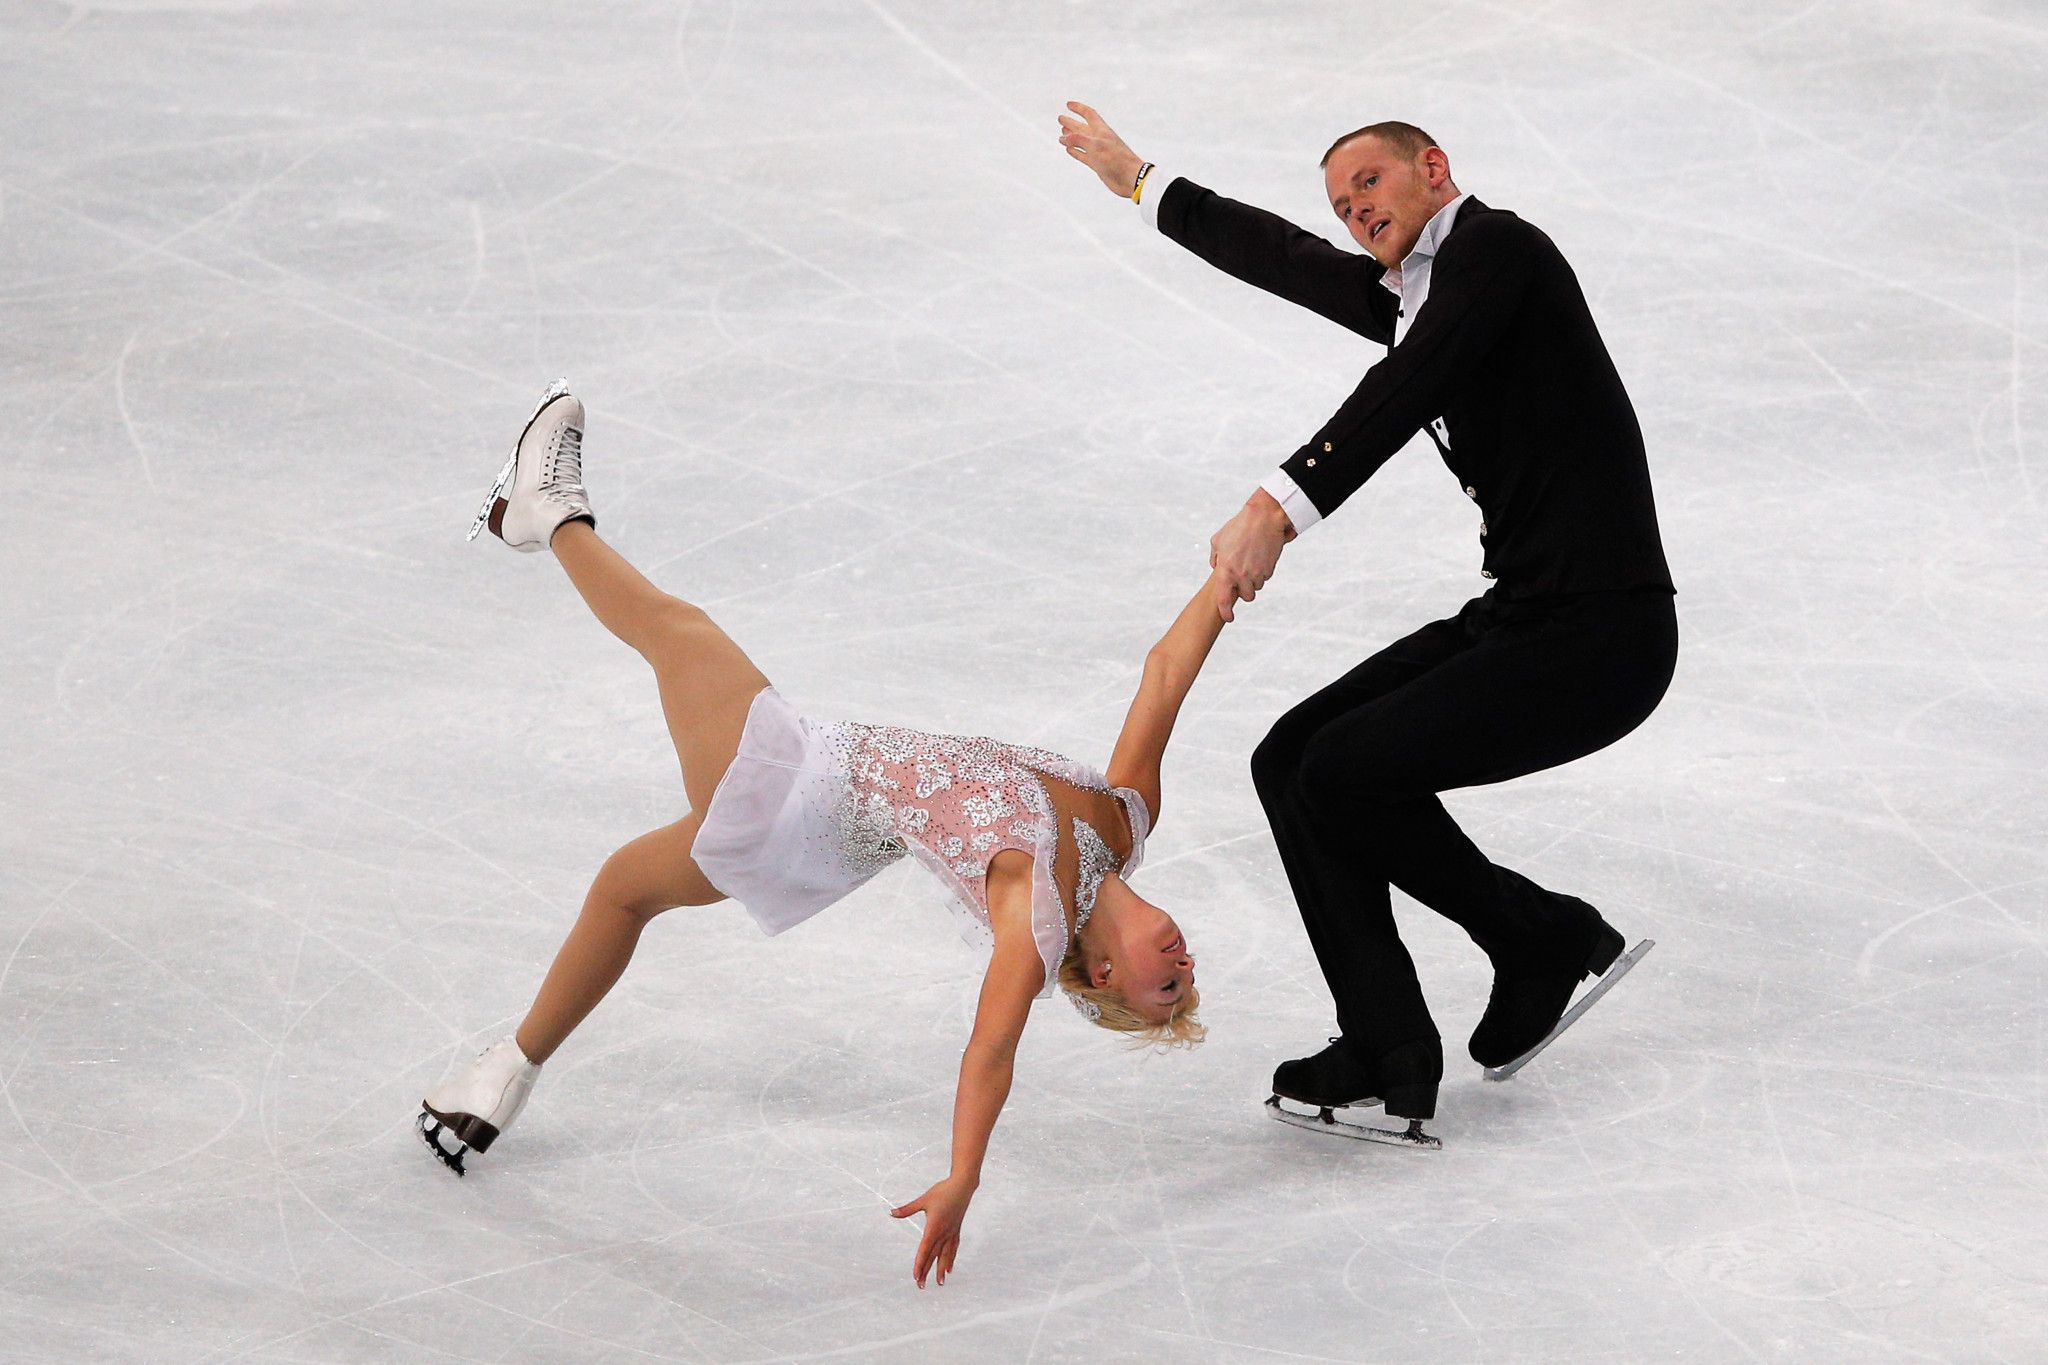 John Coughlin was a two-time United States pairs figure skating champion ©Getty Images